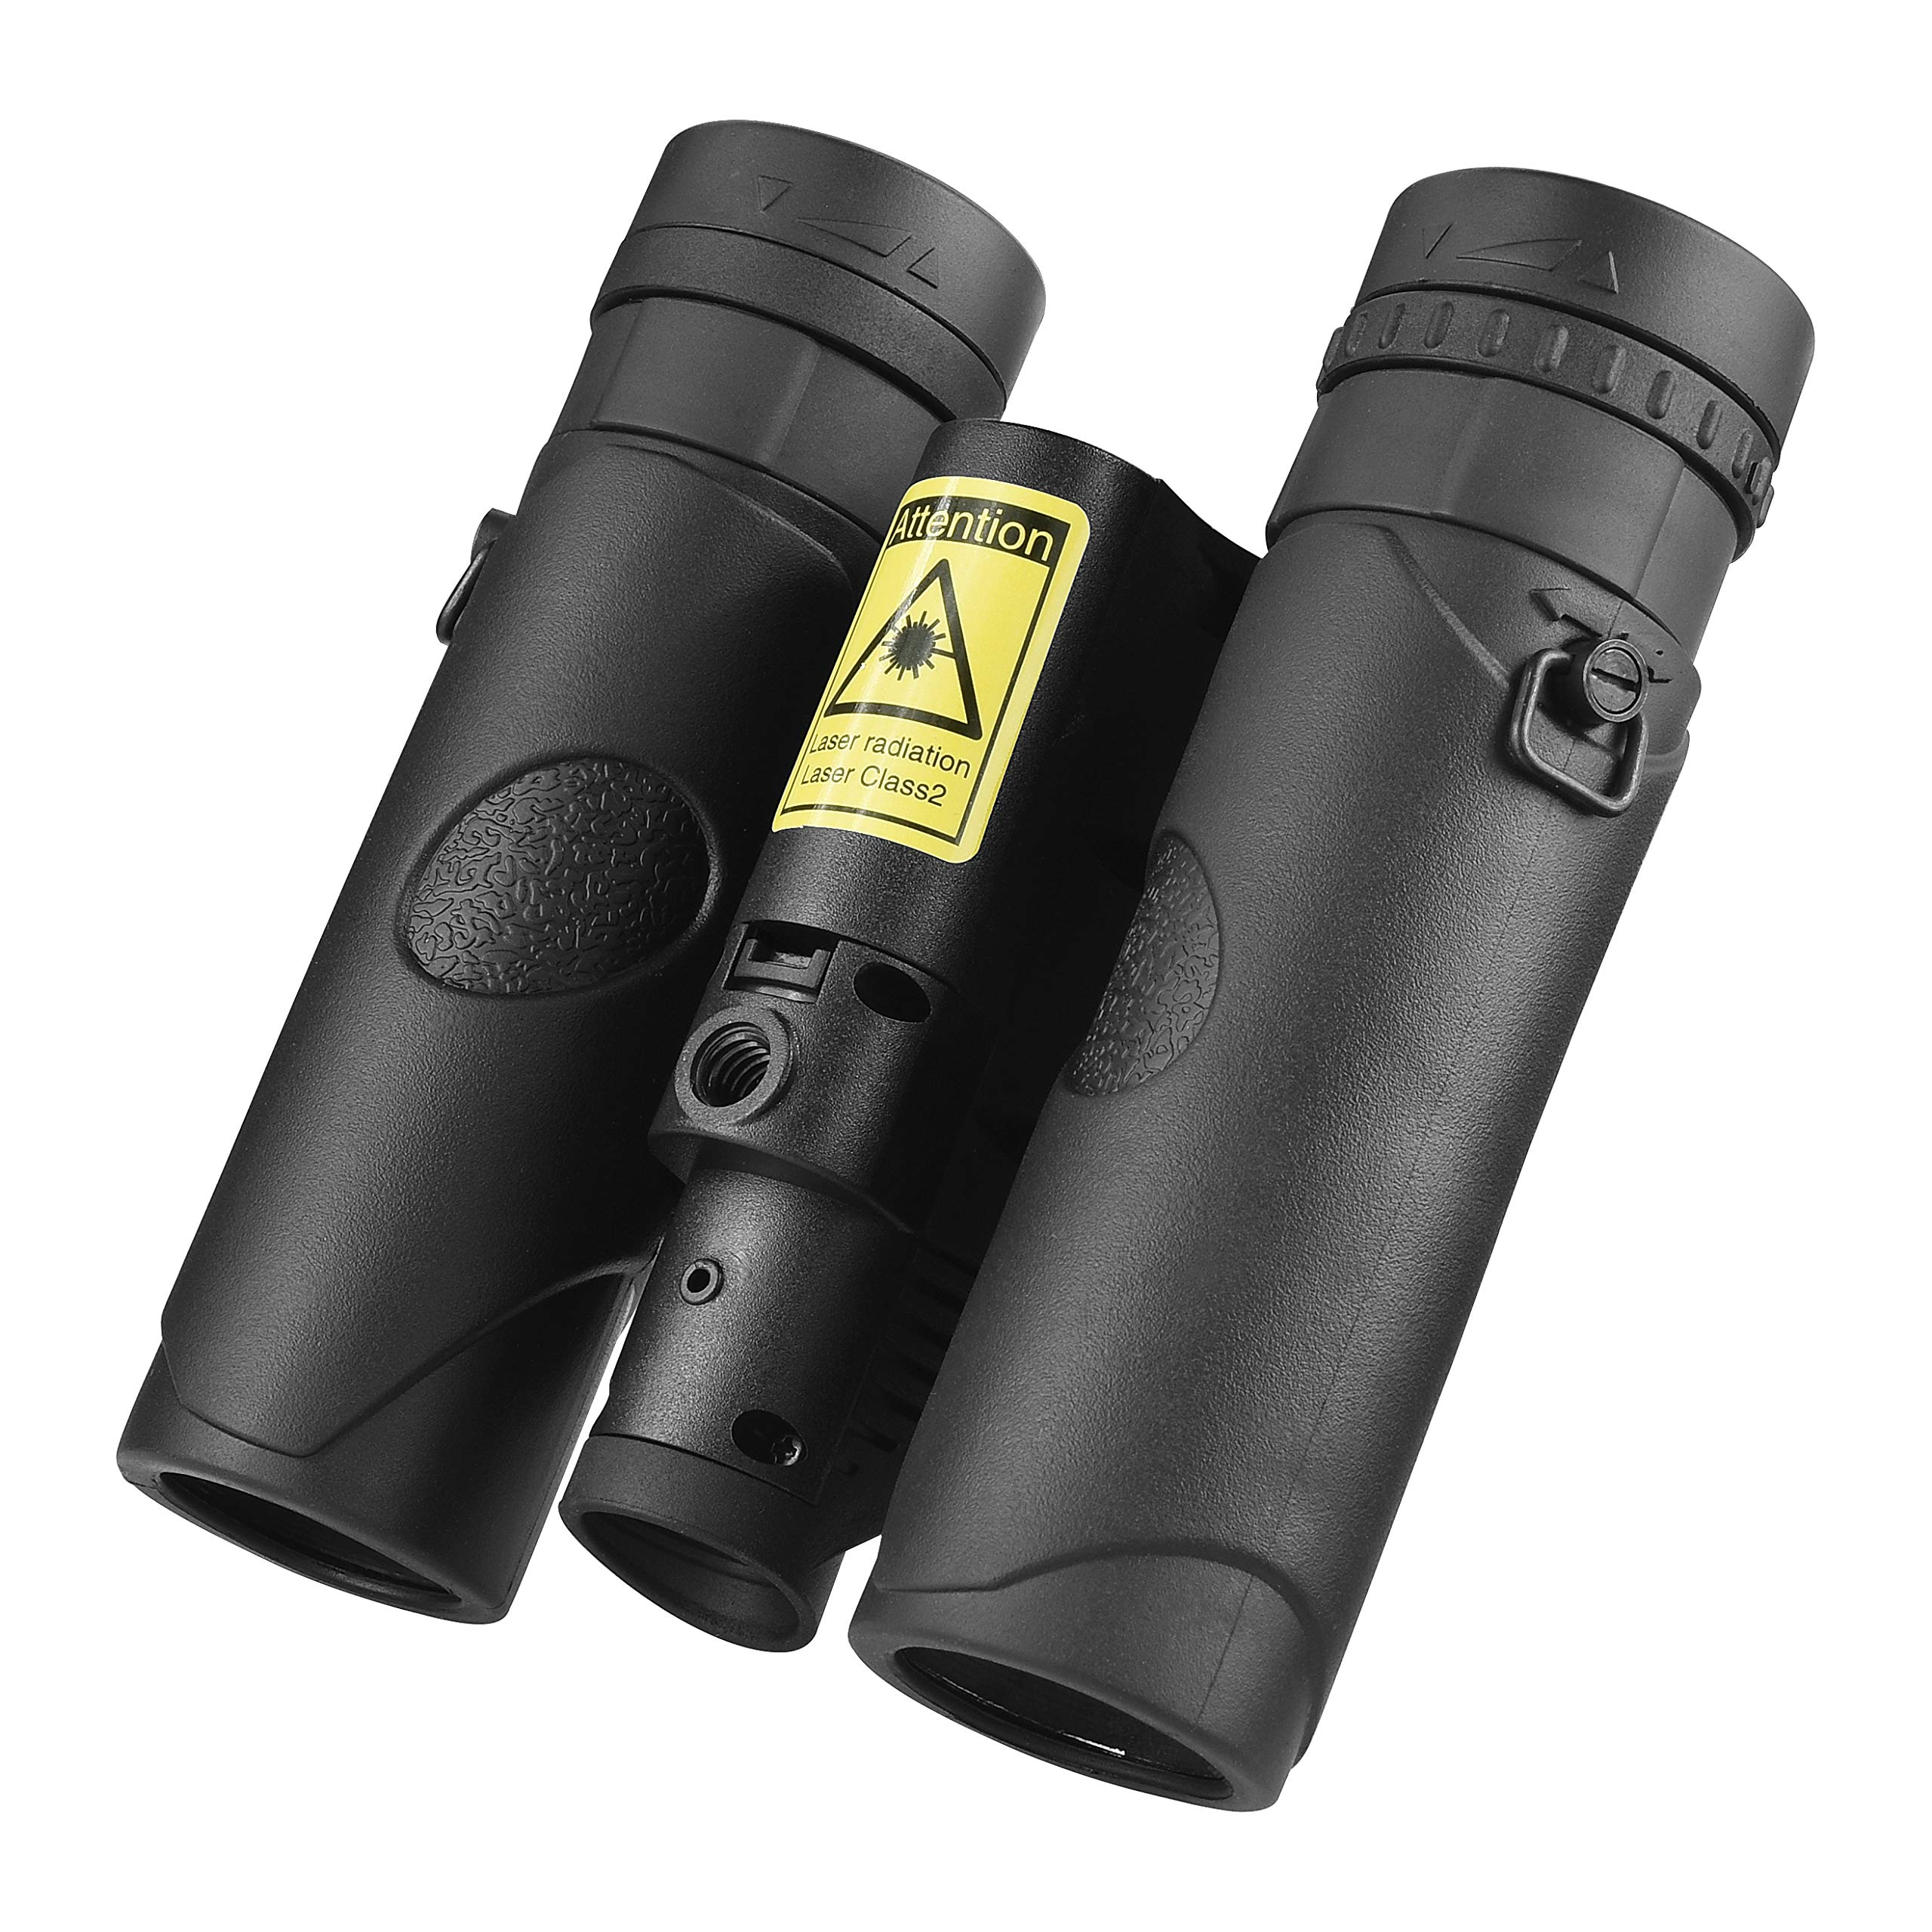 Beileshi 10X Binocular Telescope Laser Radiation Night Vision for Adults Bird Watching Travel Stargazing Hunting Concerts Sports-BAK4 Prism FMC Lens-with Carrying Case (Black-Binocular Laser) by Beileshi (Image #4)